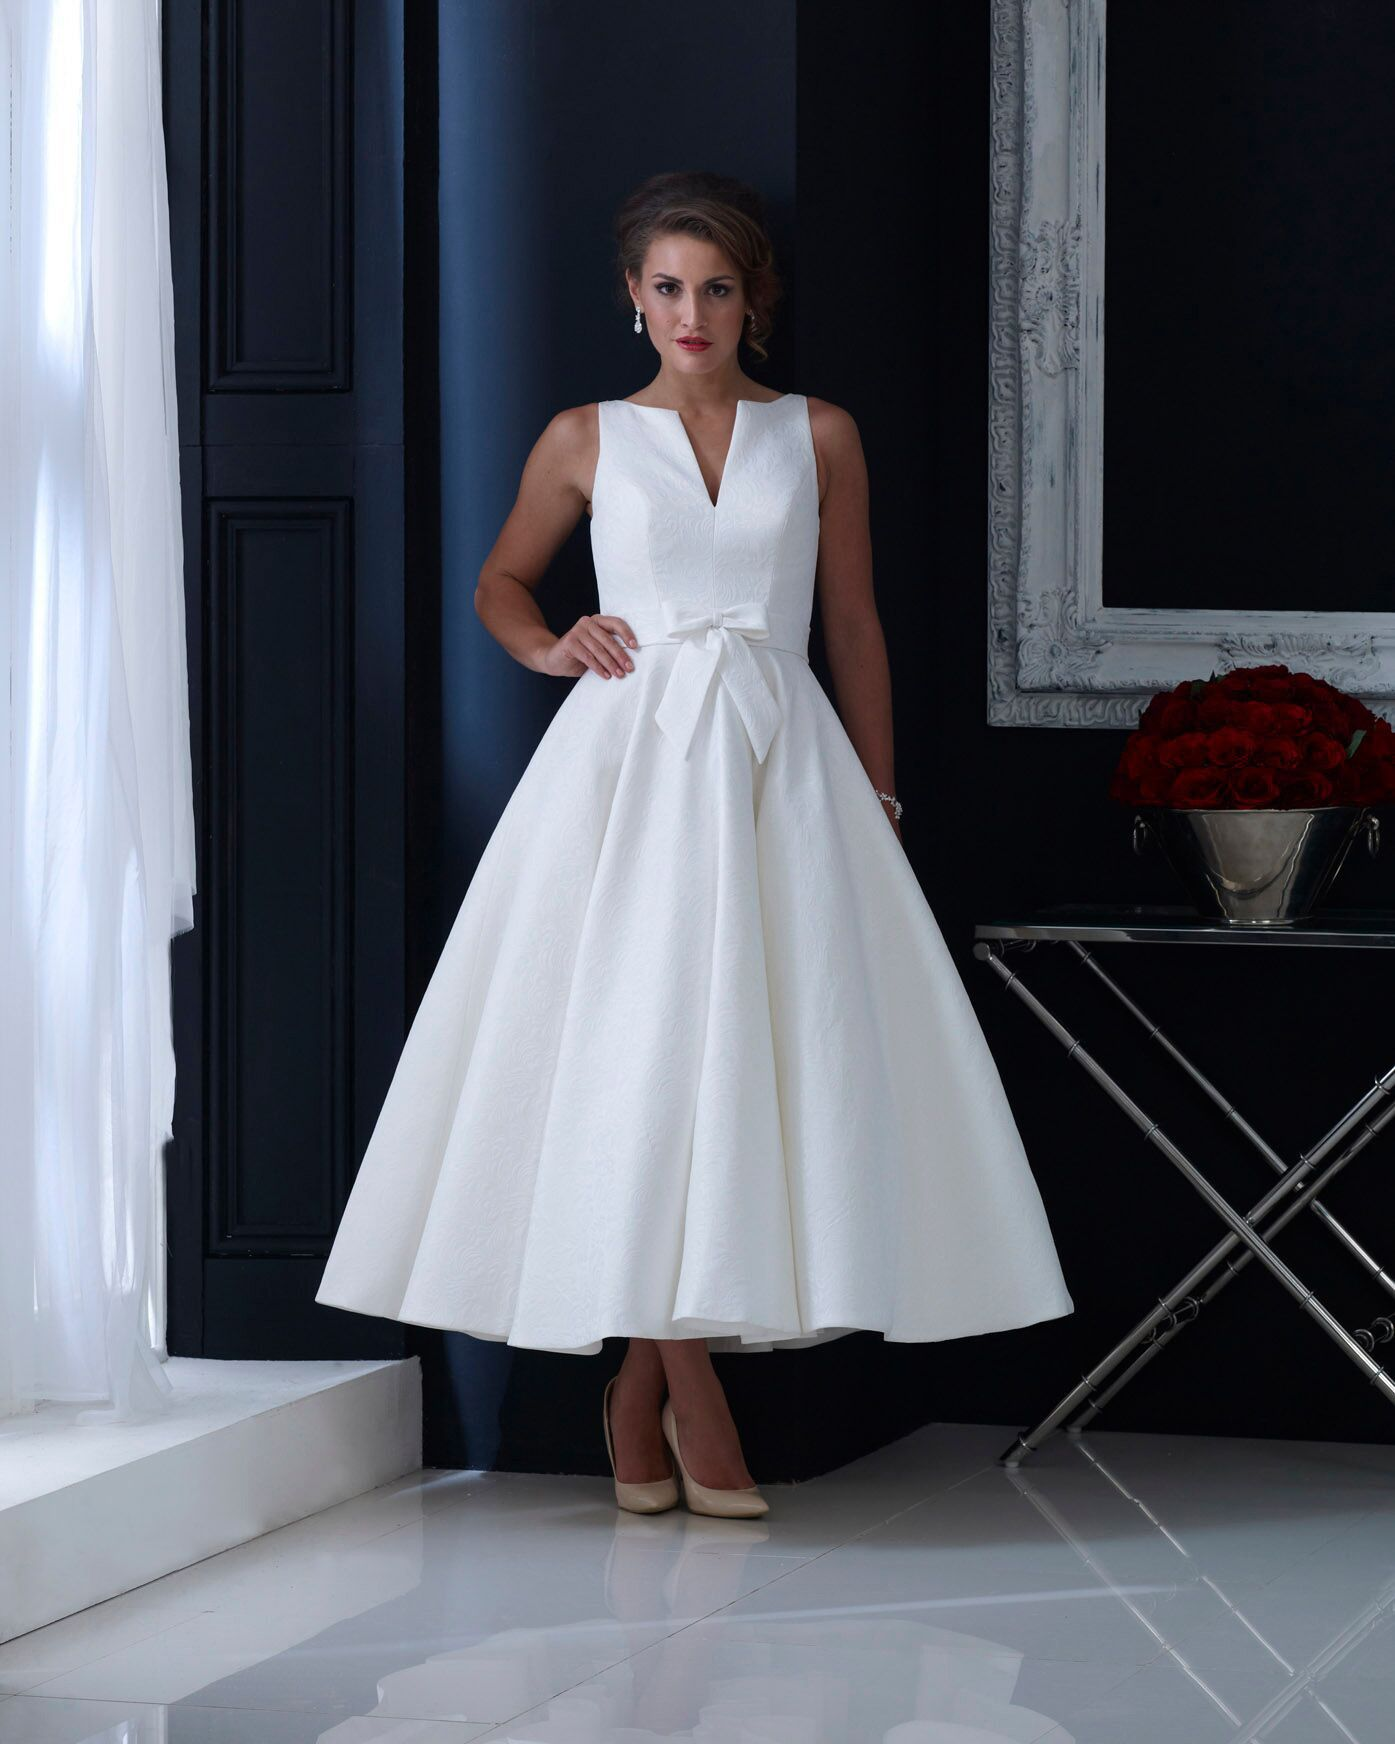 Wedding dresses fifties style  hnveronica Brocade tea length wedding dress with subtle bow and